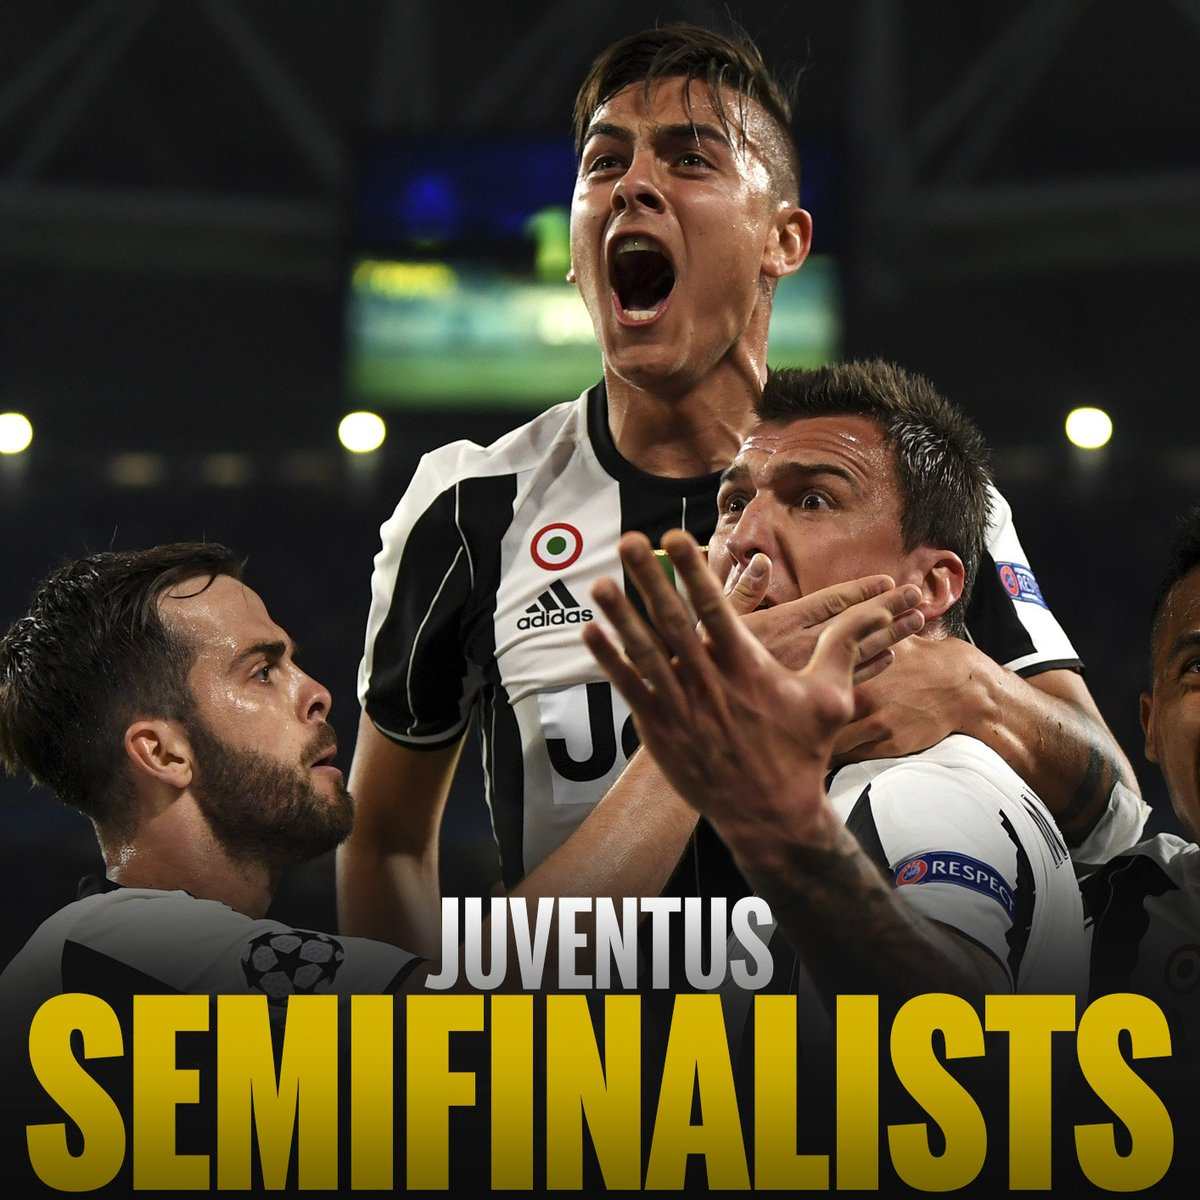 Juventus knock Barcelona out of the Champions League! They reach their seventh #UCL semifinal, the most by an Italian club! <br>http://pic.twitter.com/KSRqyfLW8E